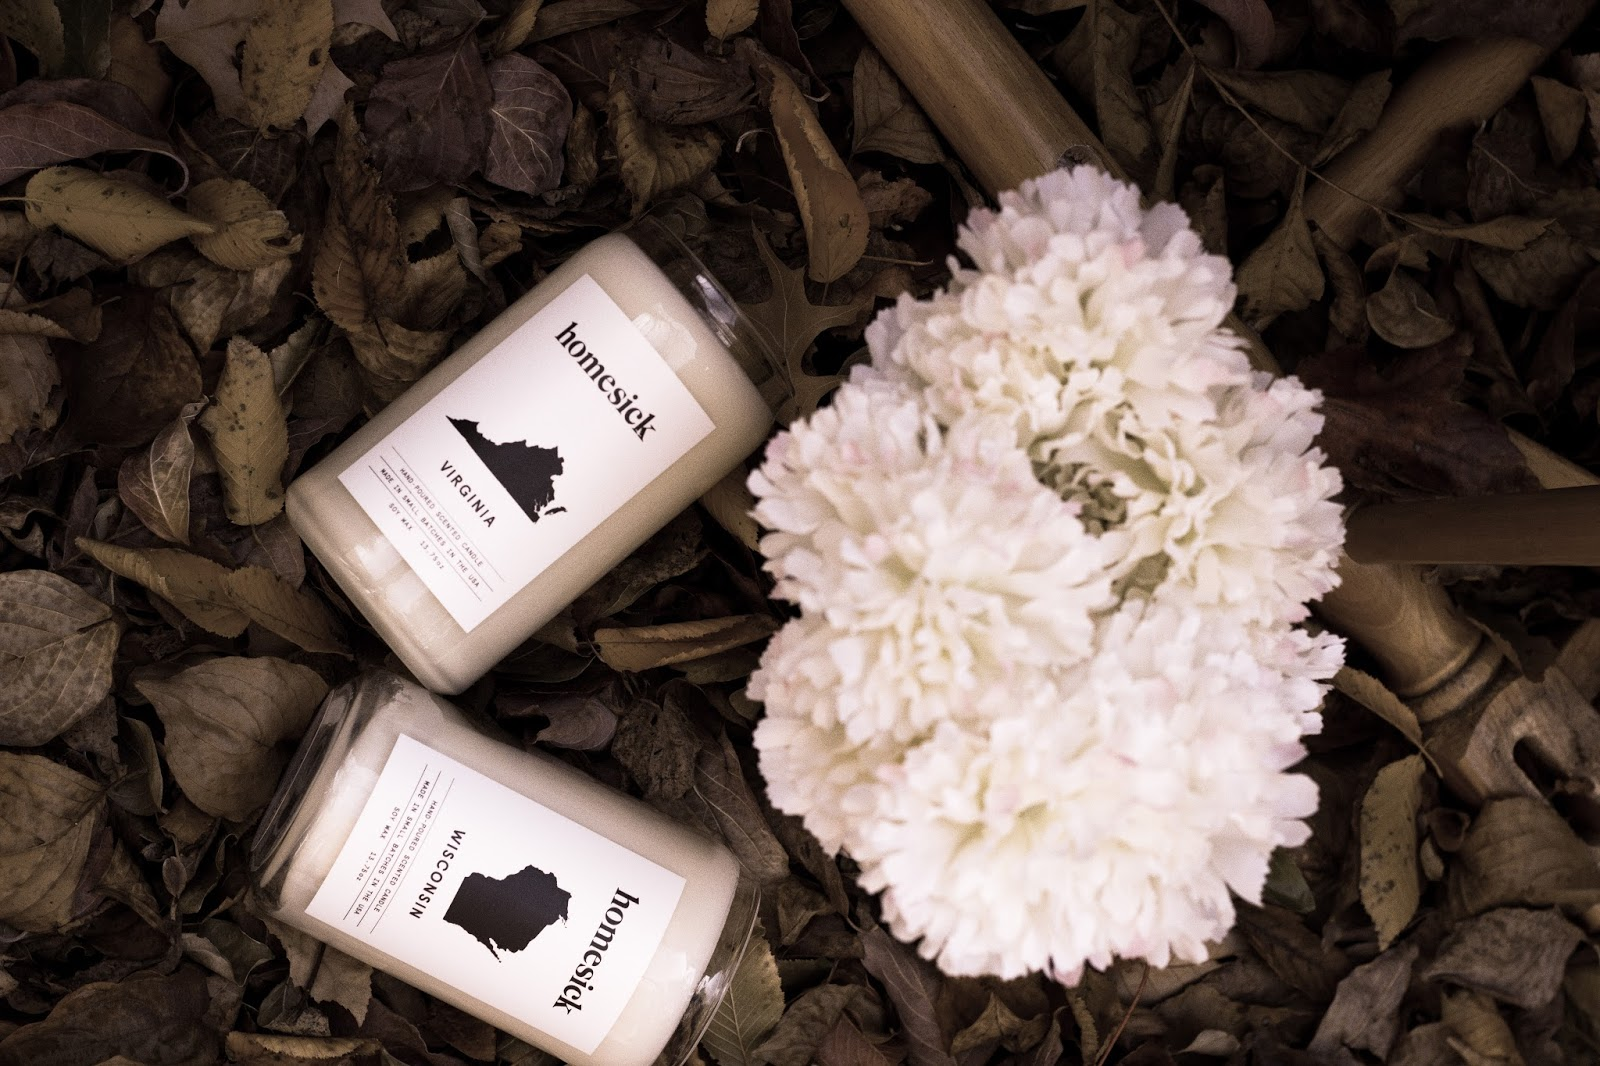 THIS CANDLE FRAGRANCE WILL BRING YOUR FAVORITE CITIES TO YOU